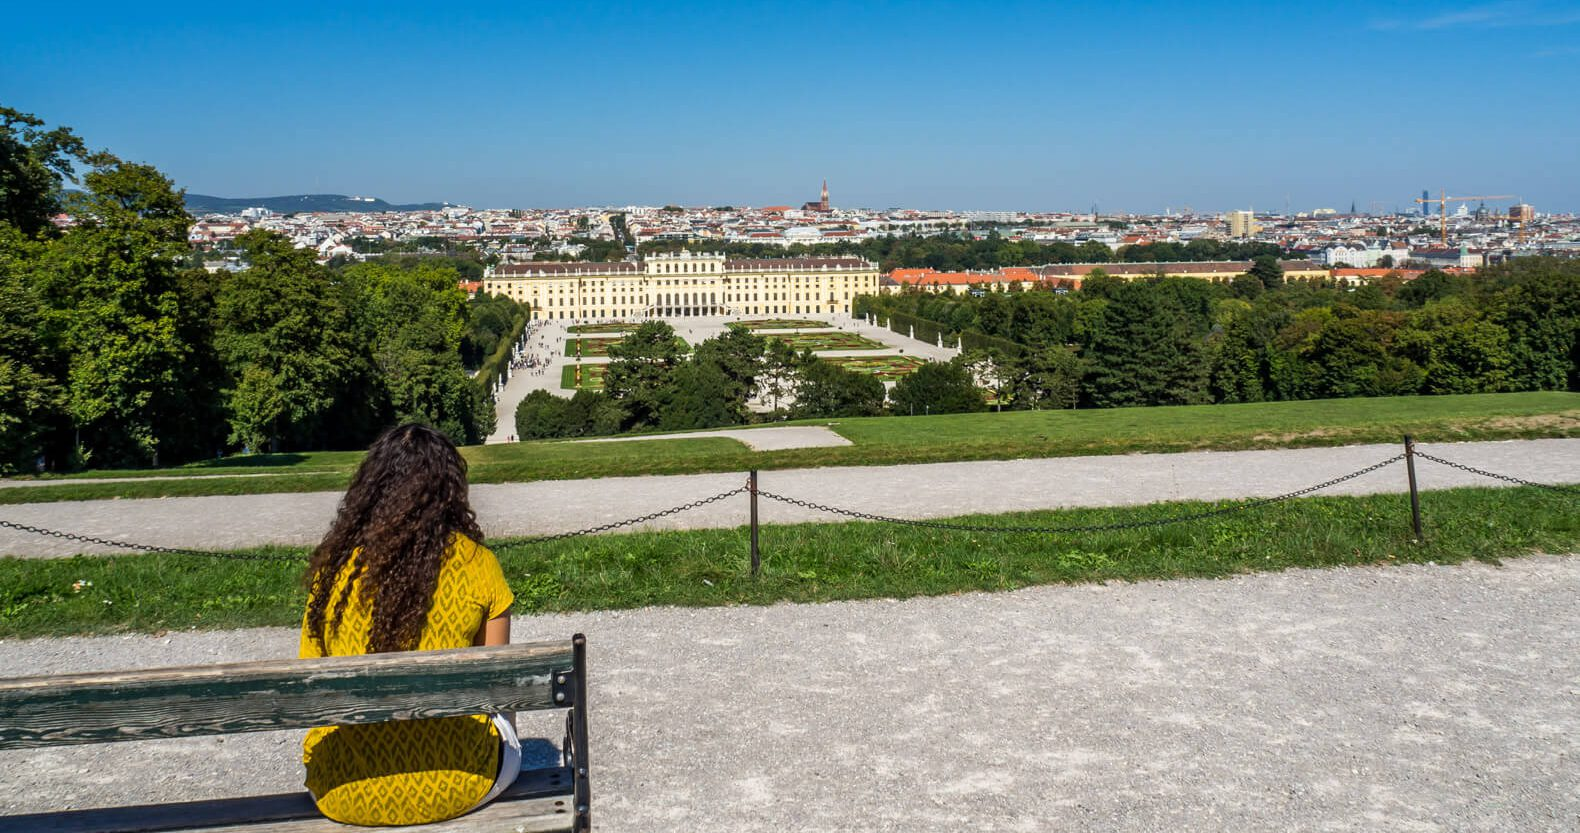 Our Central Europe Itinerary - From Vienna to Budapest - Schonbrunn